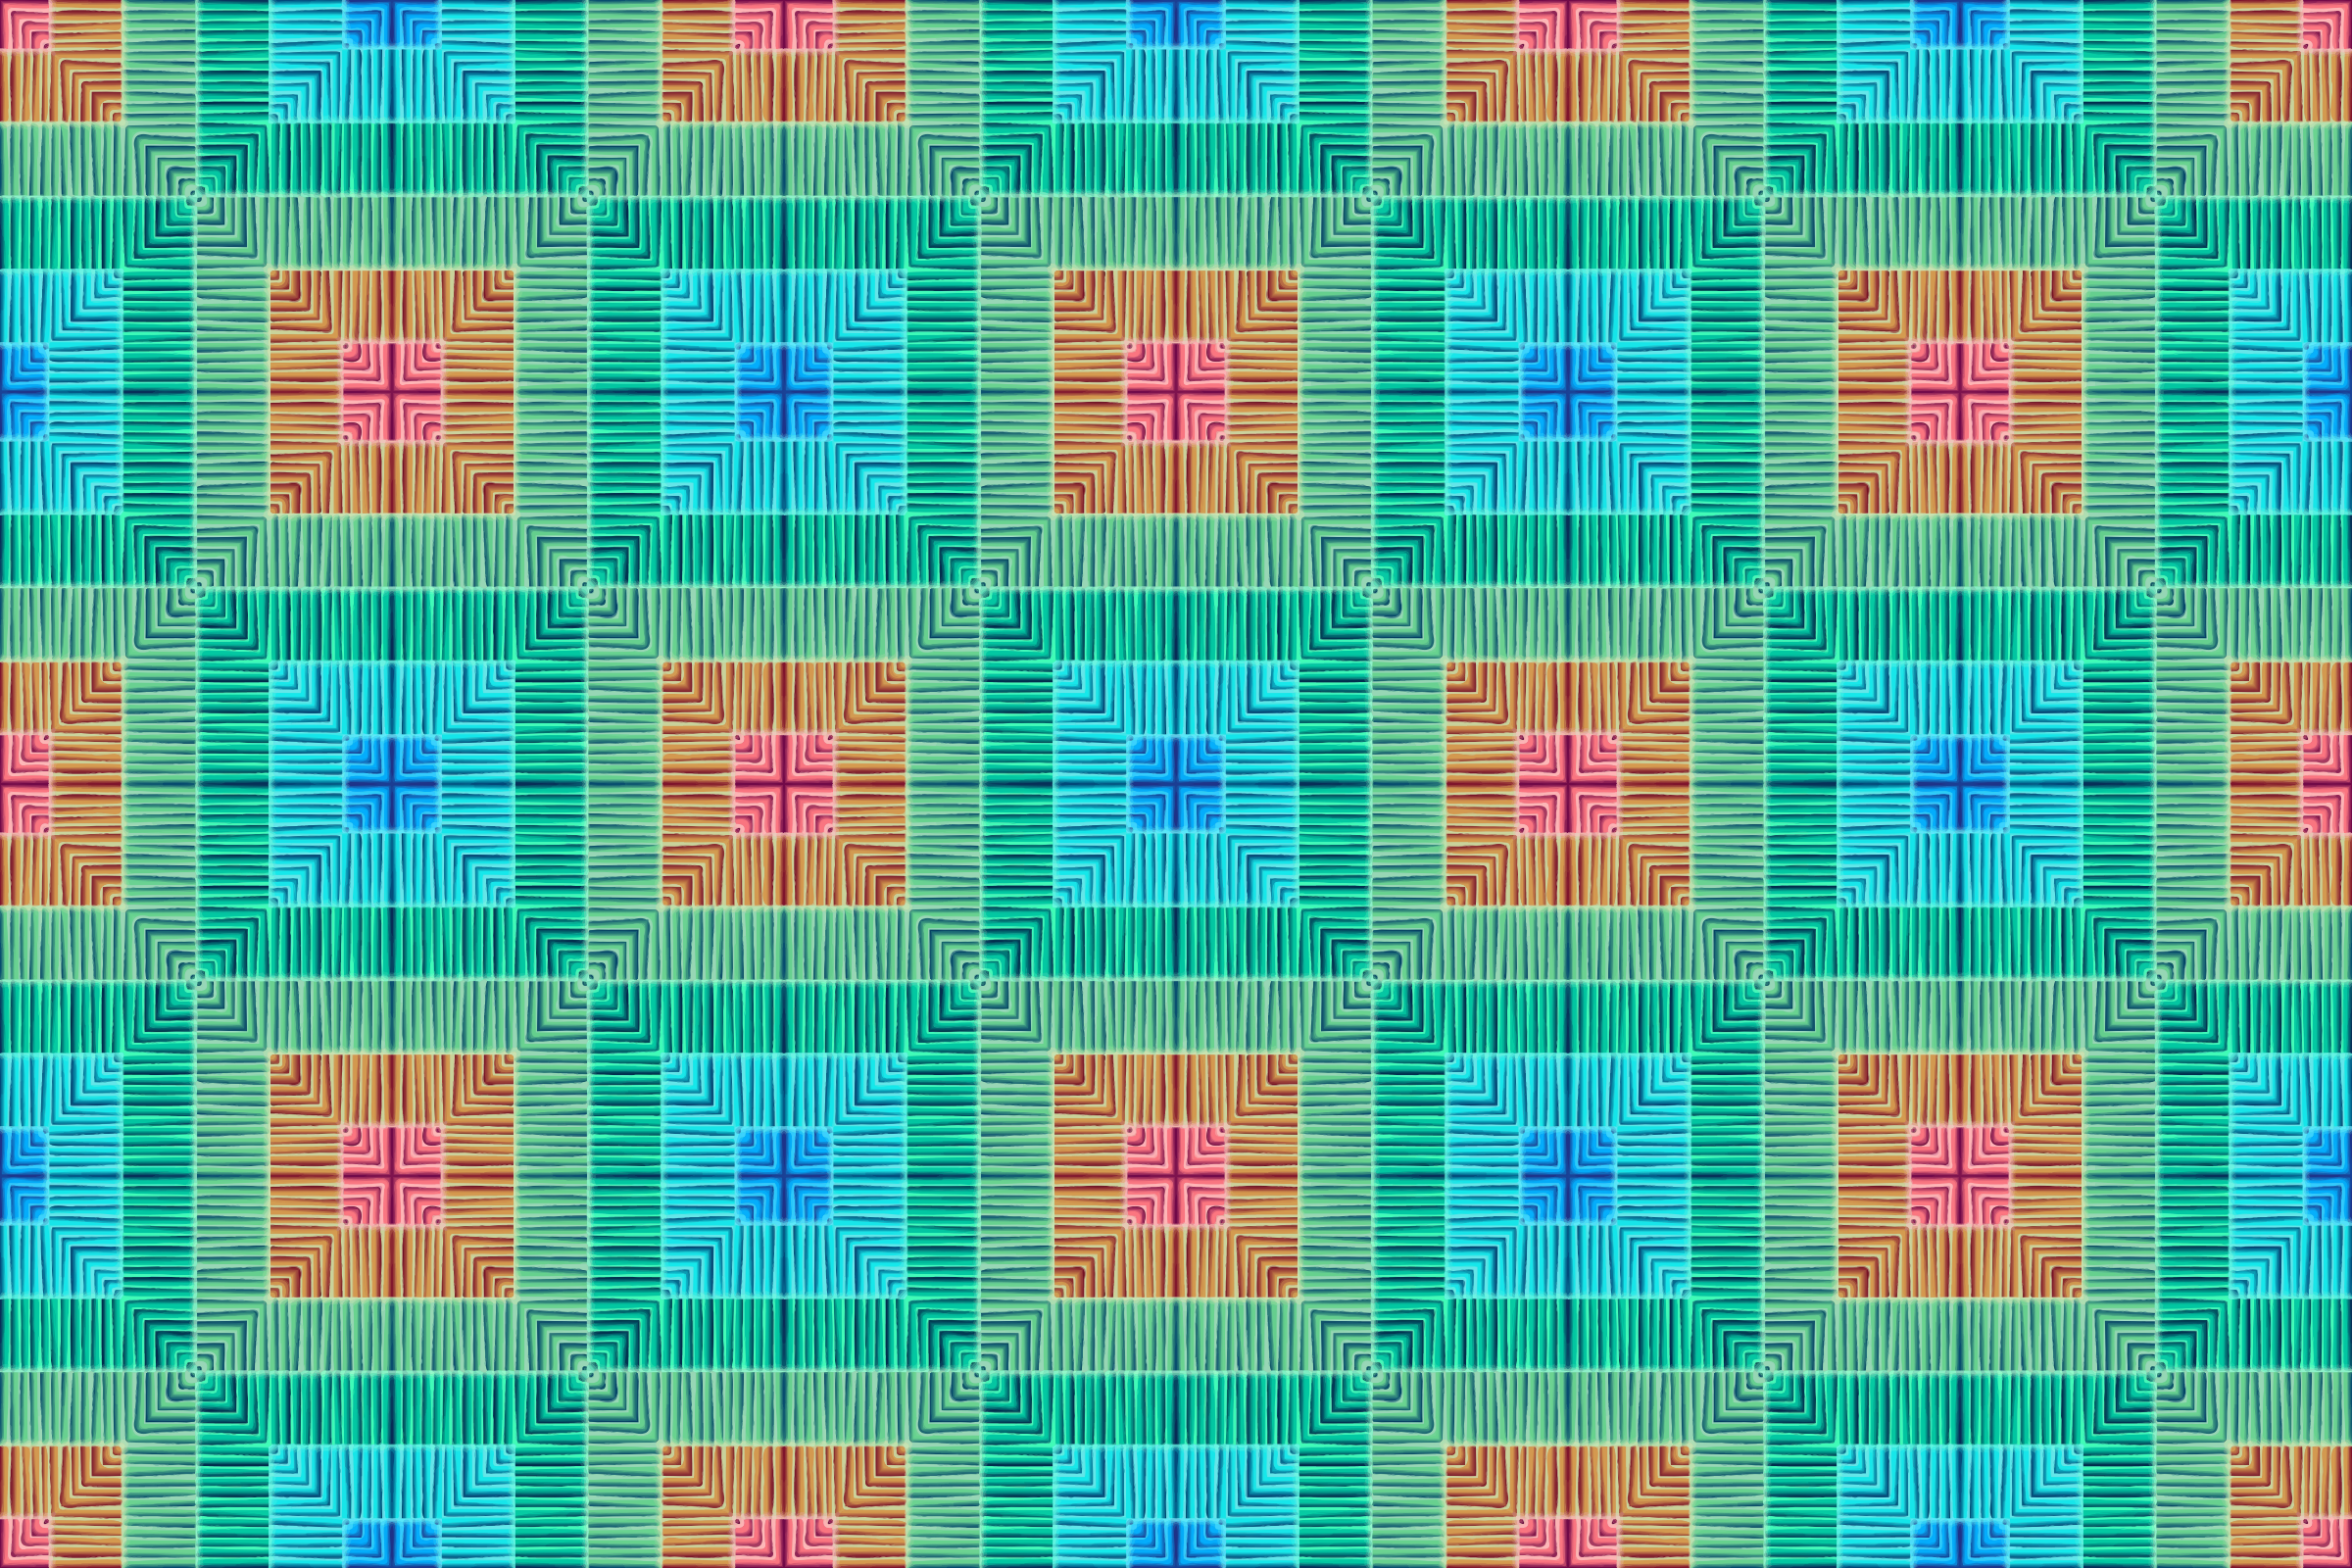 Background pattern 245 (colour 5) by Firkin